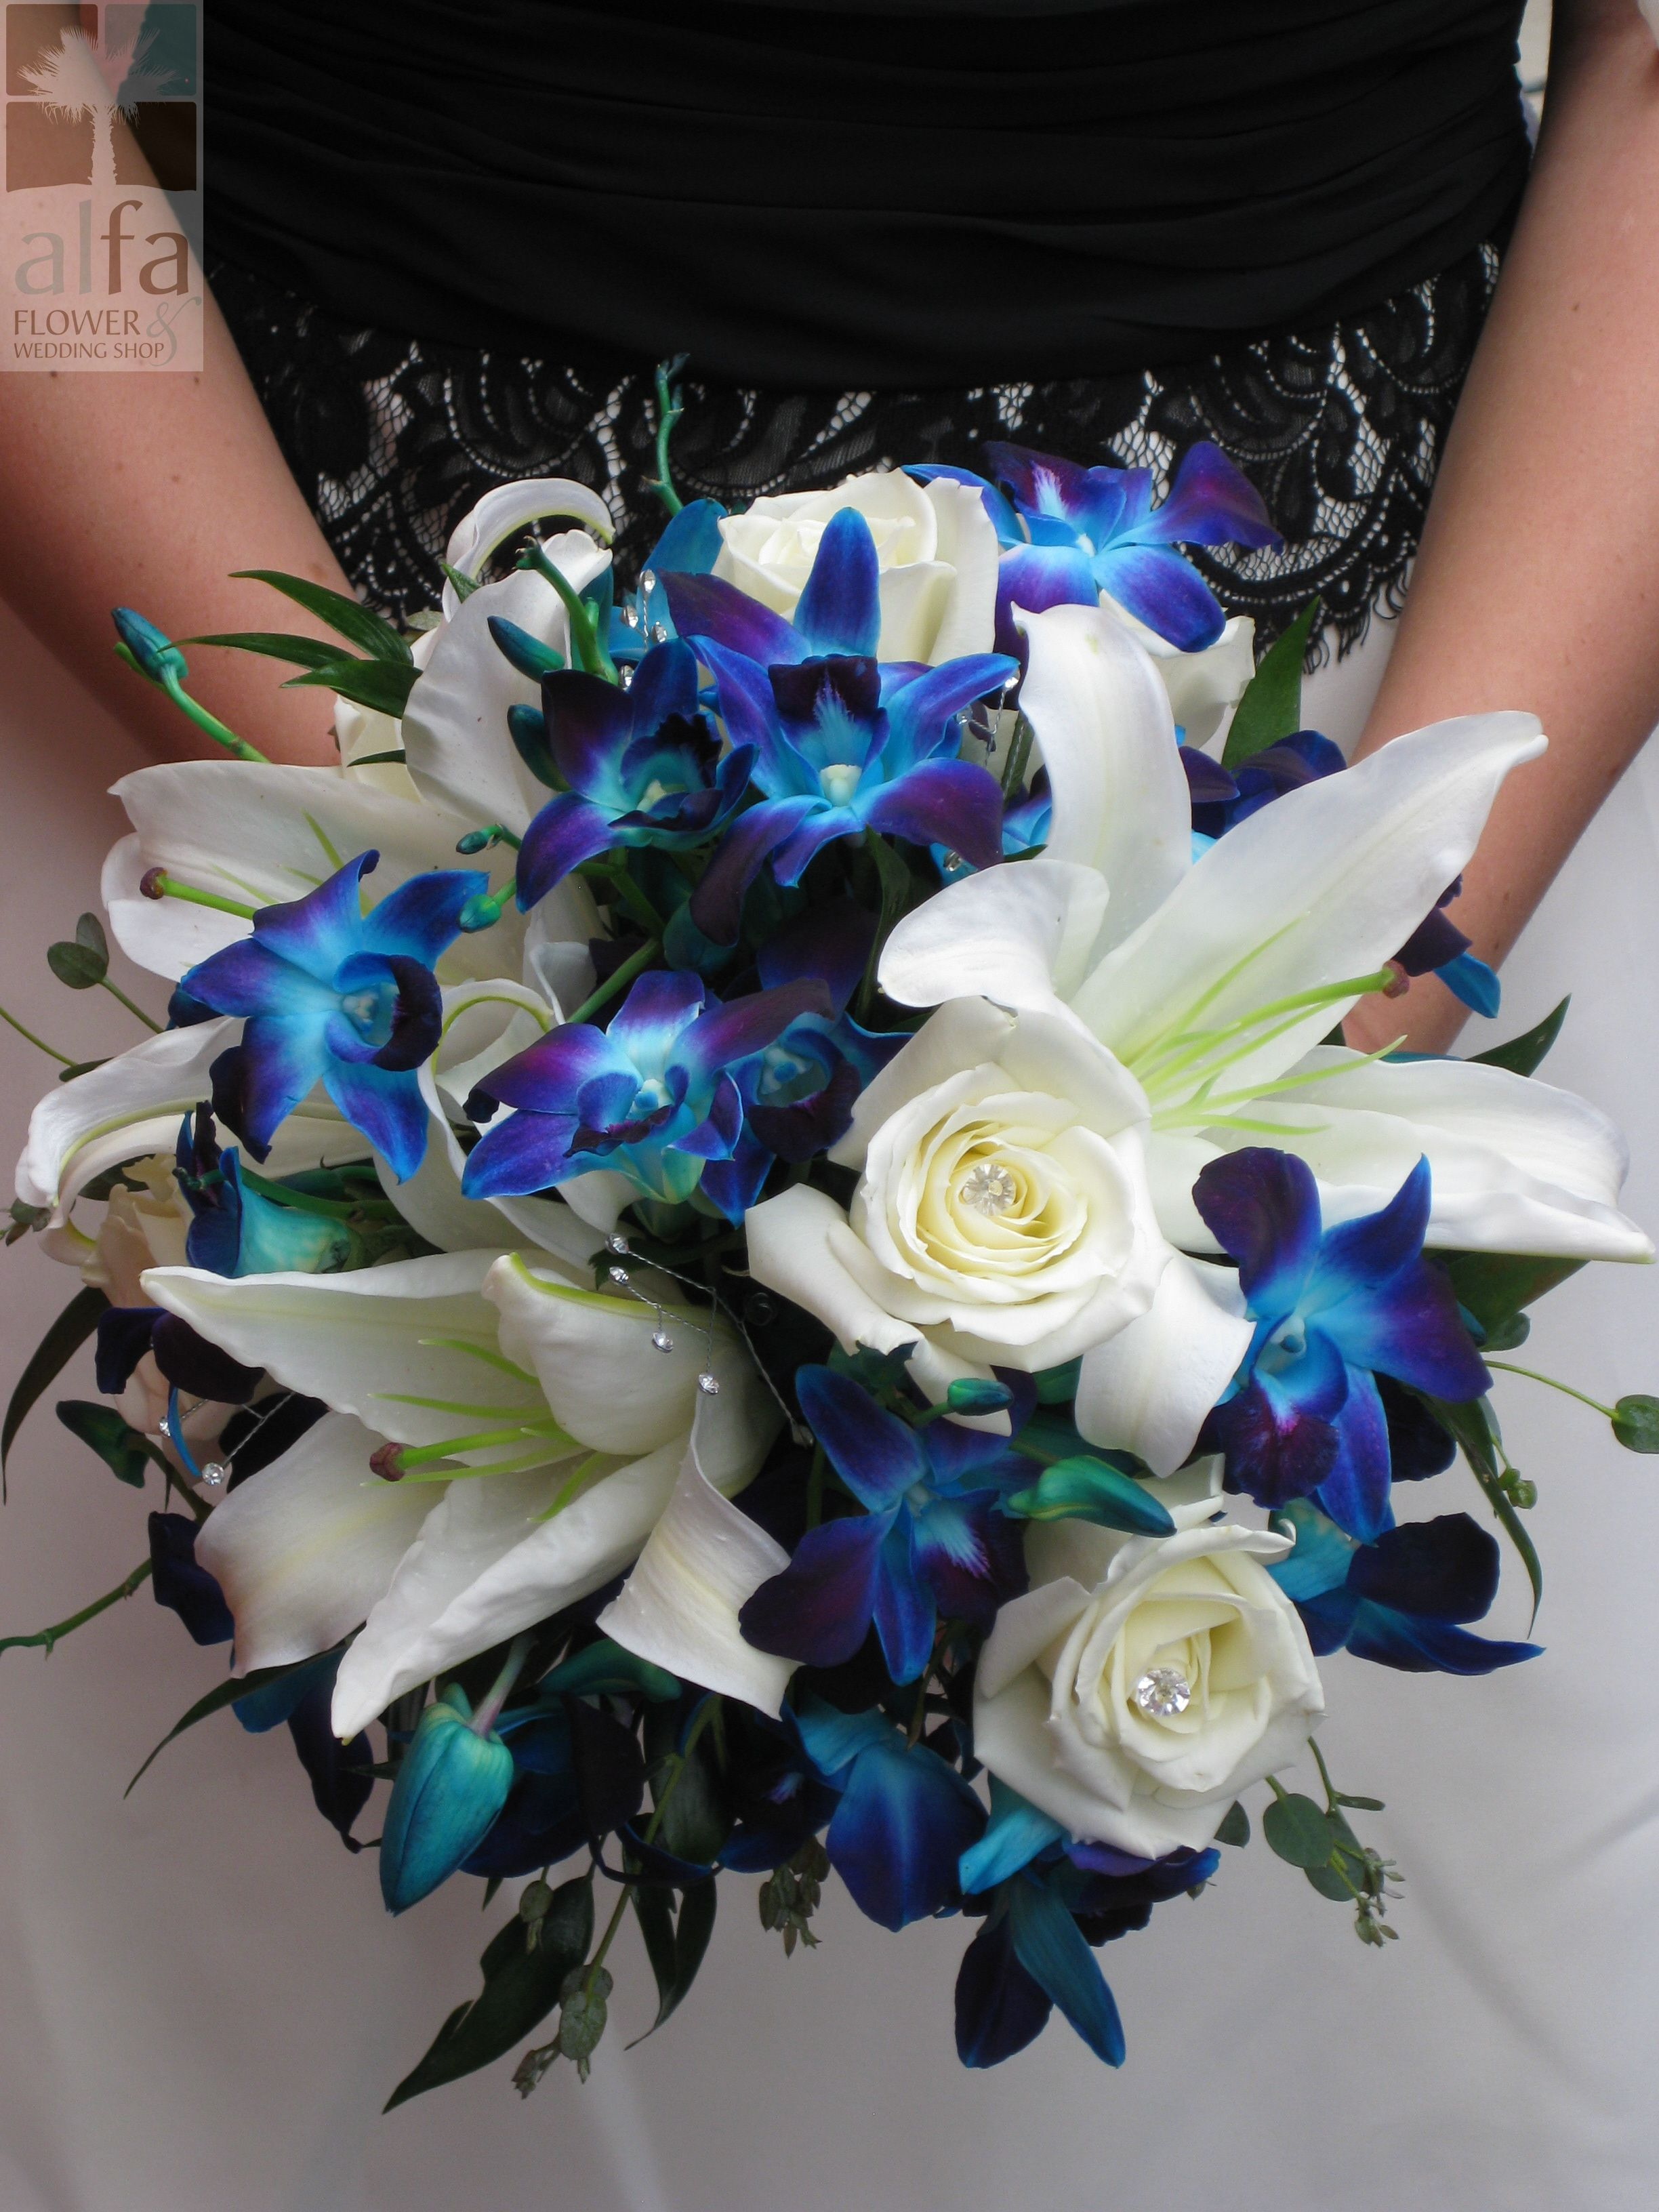 A Gorgeous Bridal Bouquet With White Casablanca Lilies And Blue